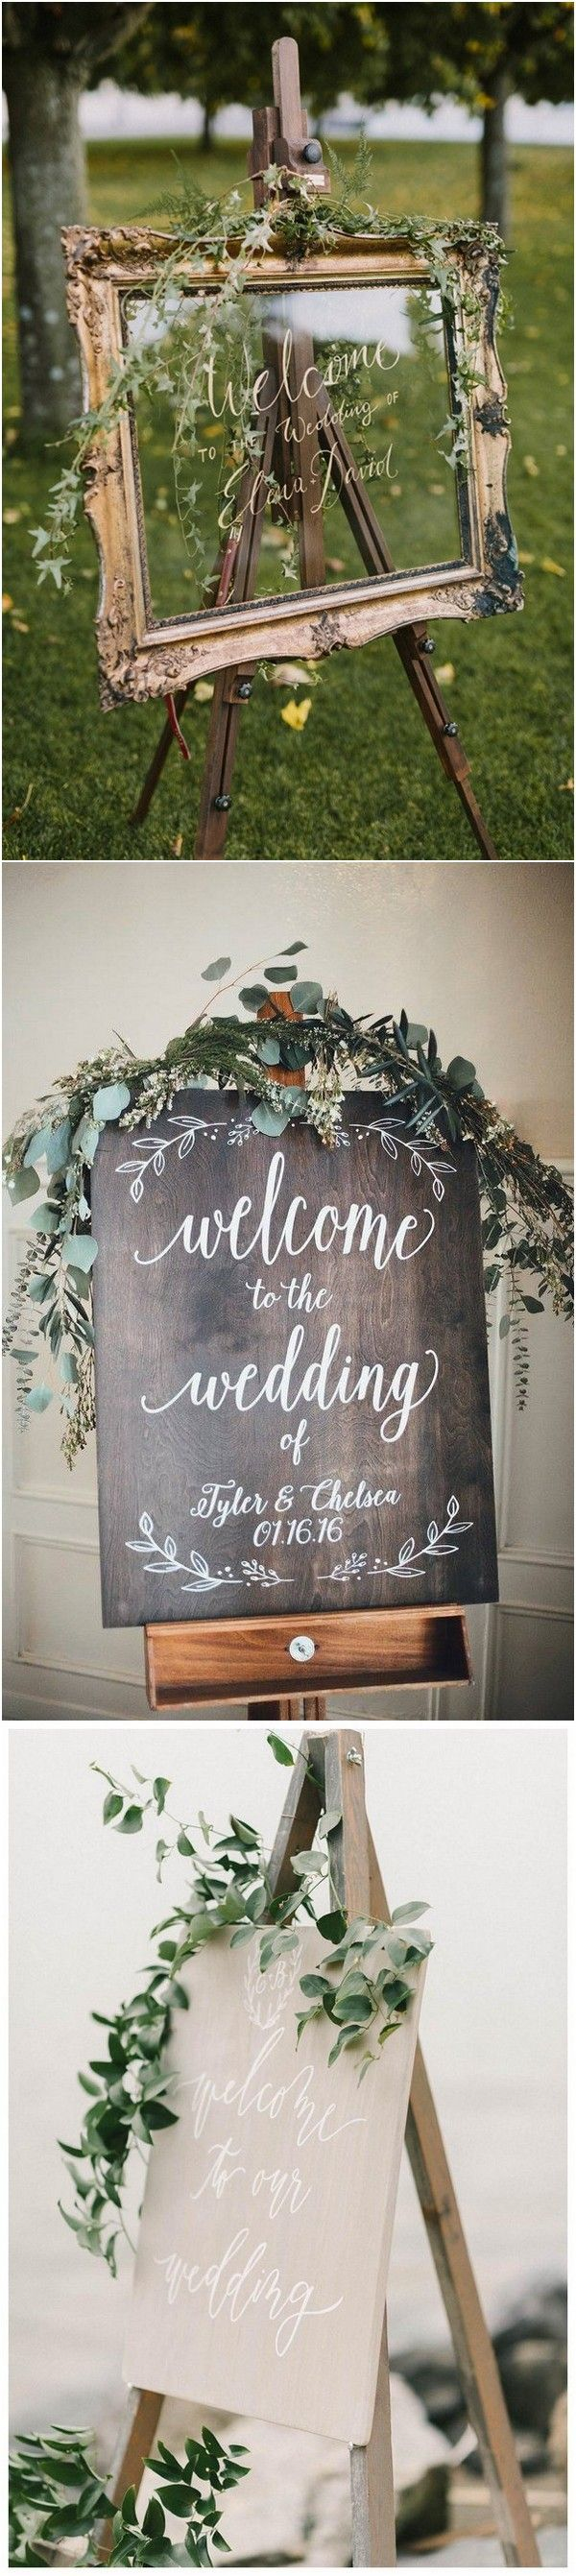 elegant greenery outdoor wedding sign ideas